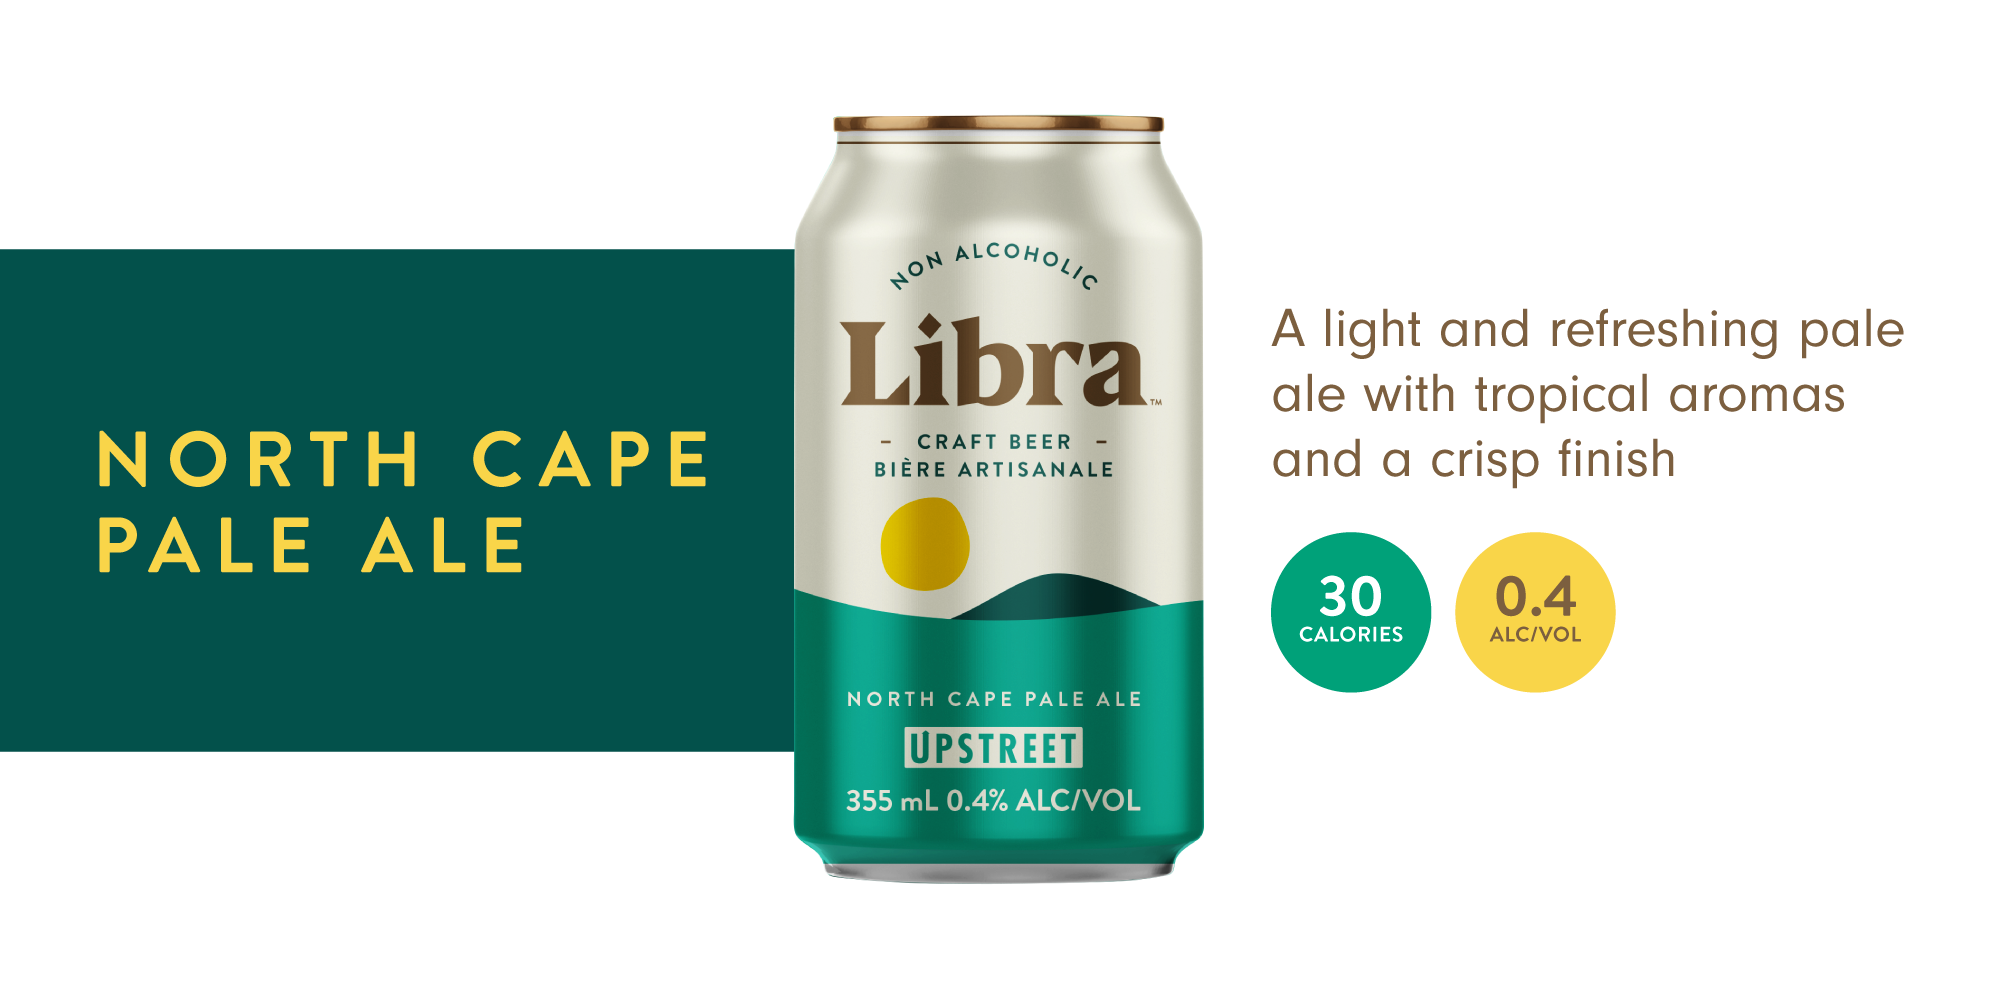 Libra, a light and refreshing pale ale beer with tropical aromas and a crisp finish.